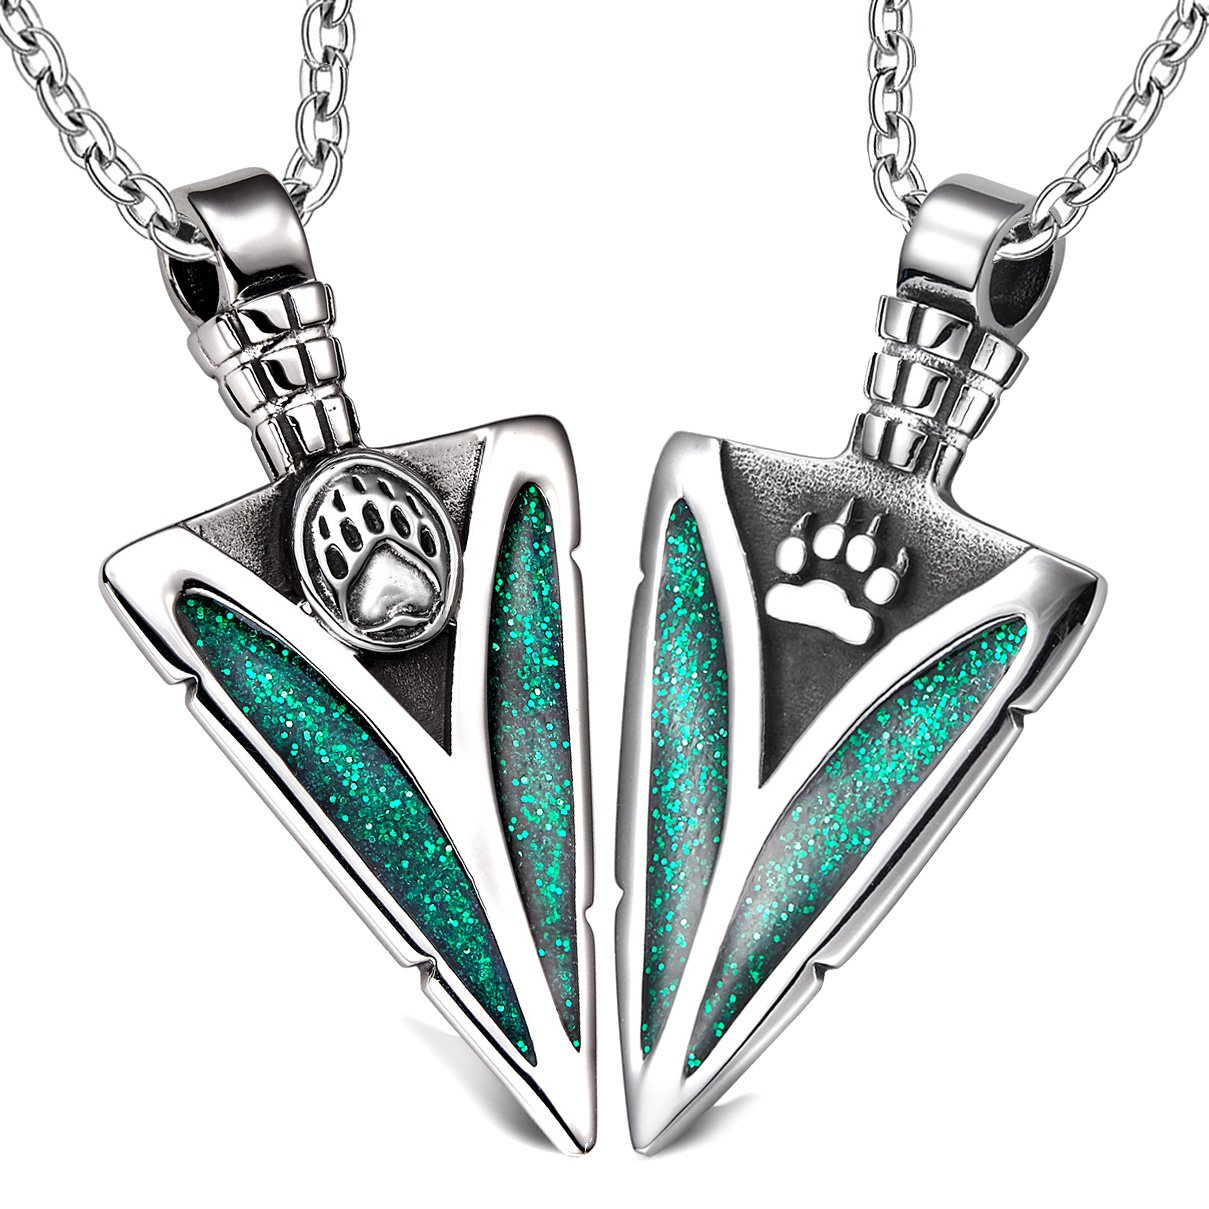 Arrowhead Wolf and Bear Paws Love Couples or BFF Set Protection Amulets Sparkling Royal Green Necklaces